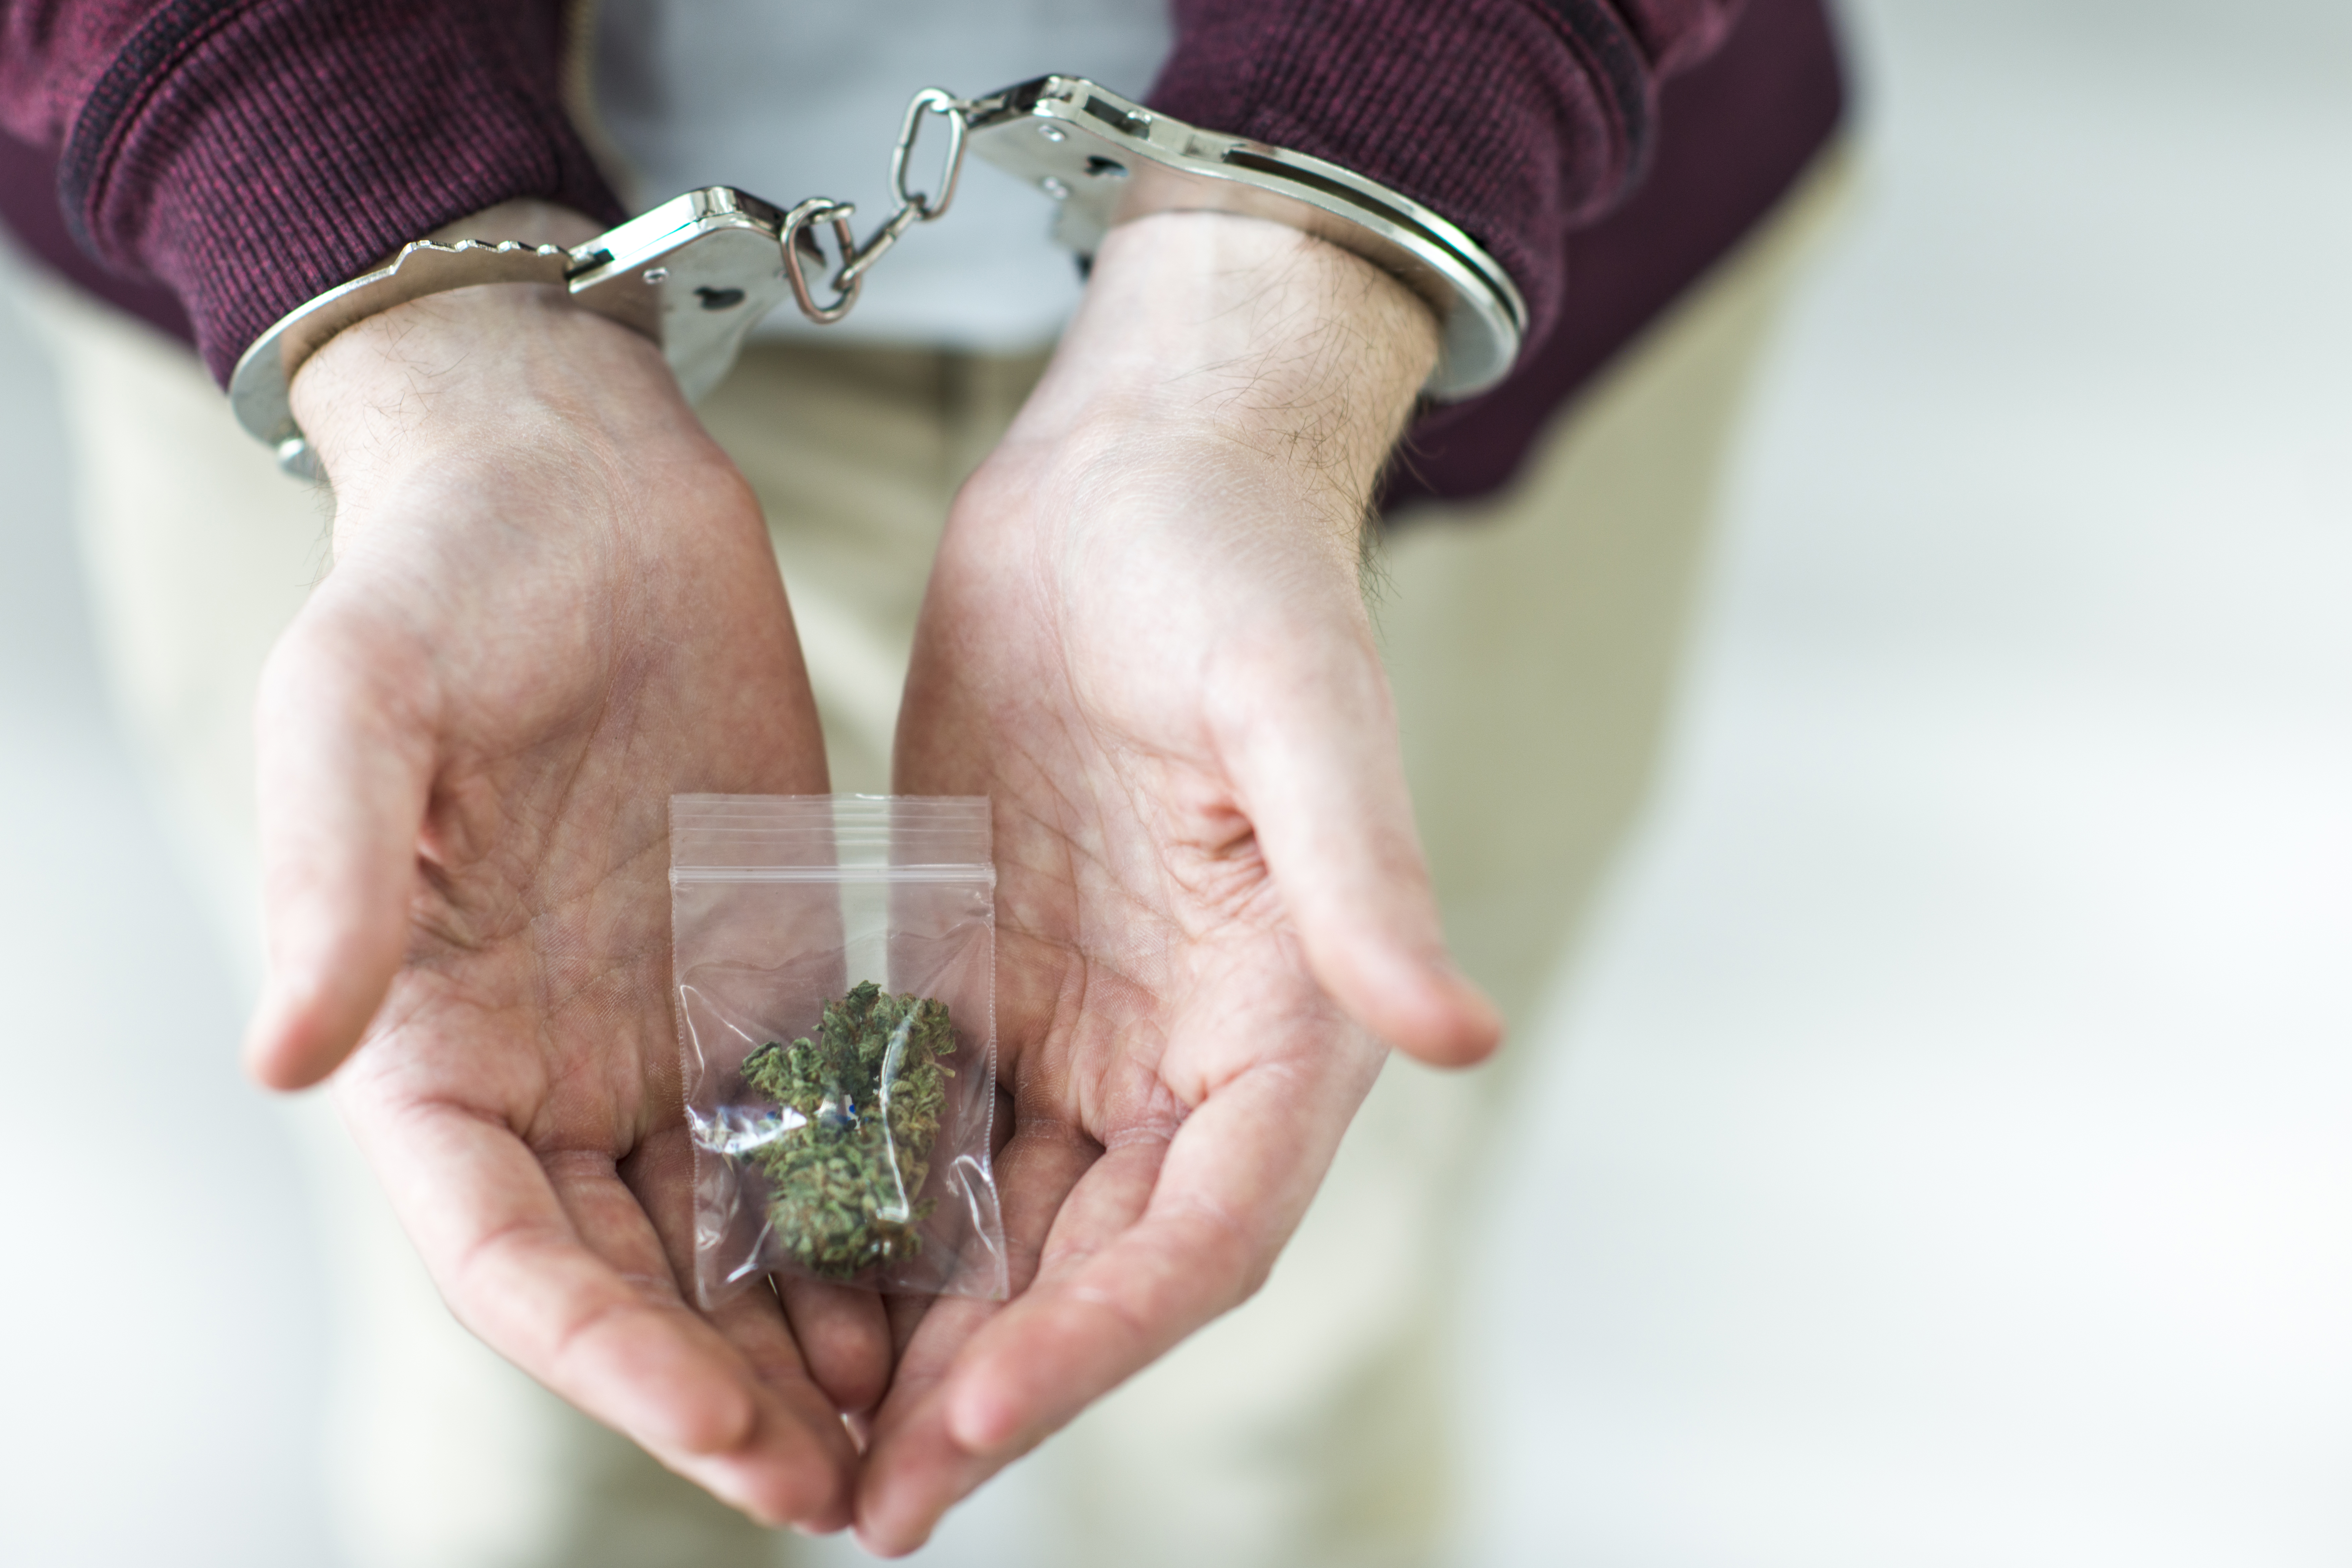 Expunging Marijuana Convictions by the Thousands in San Francisco